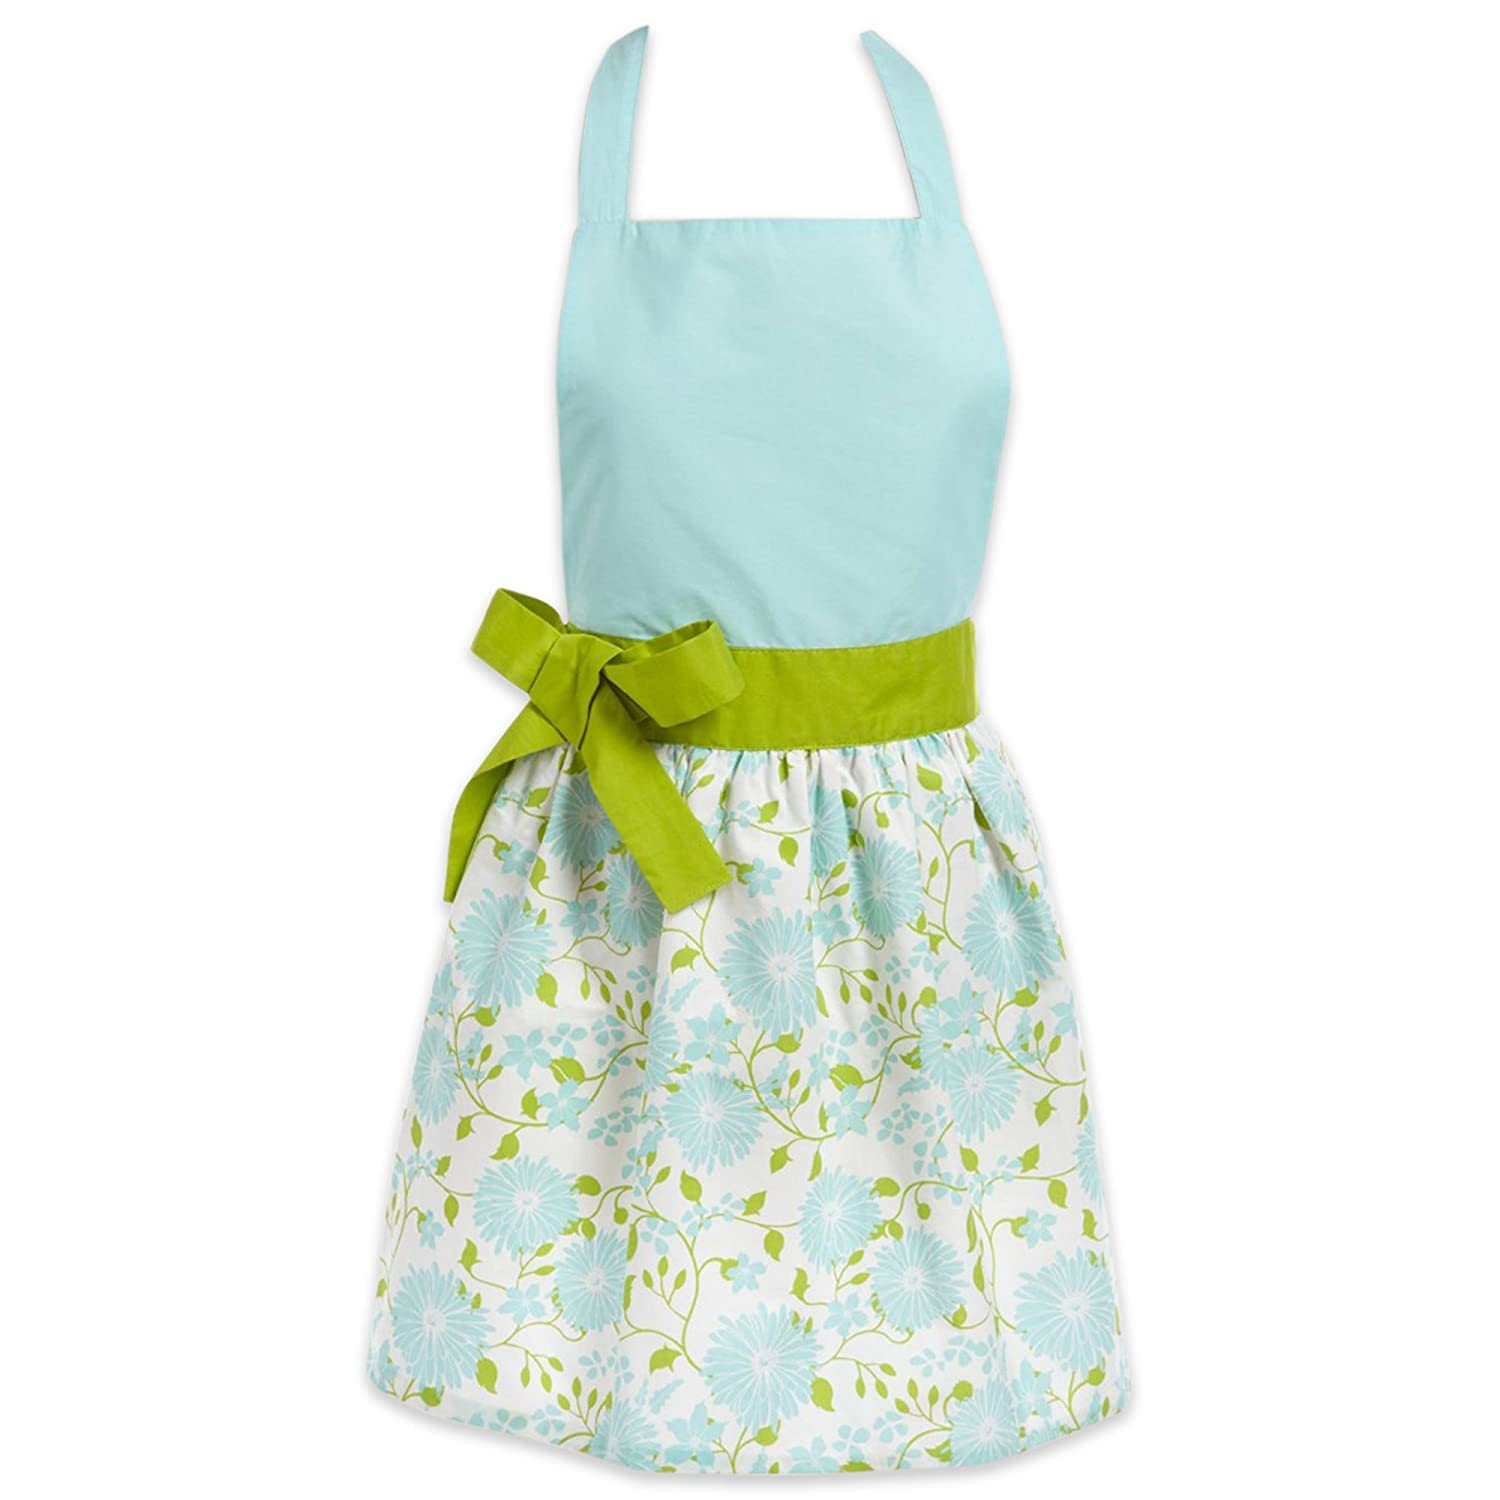 Amazon.com: DII Cotton Women Apron Dress with Extra Long Ties, 31 x ...